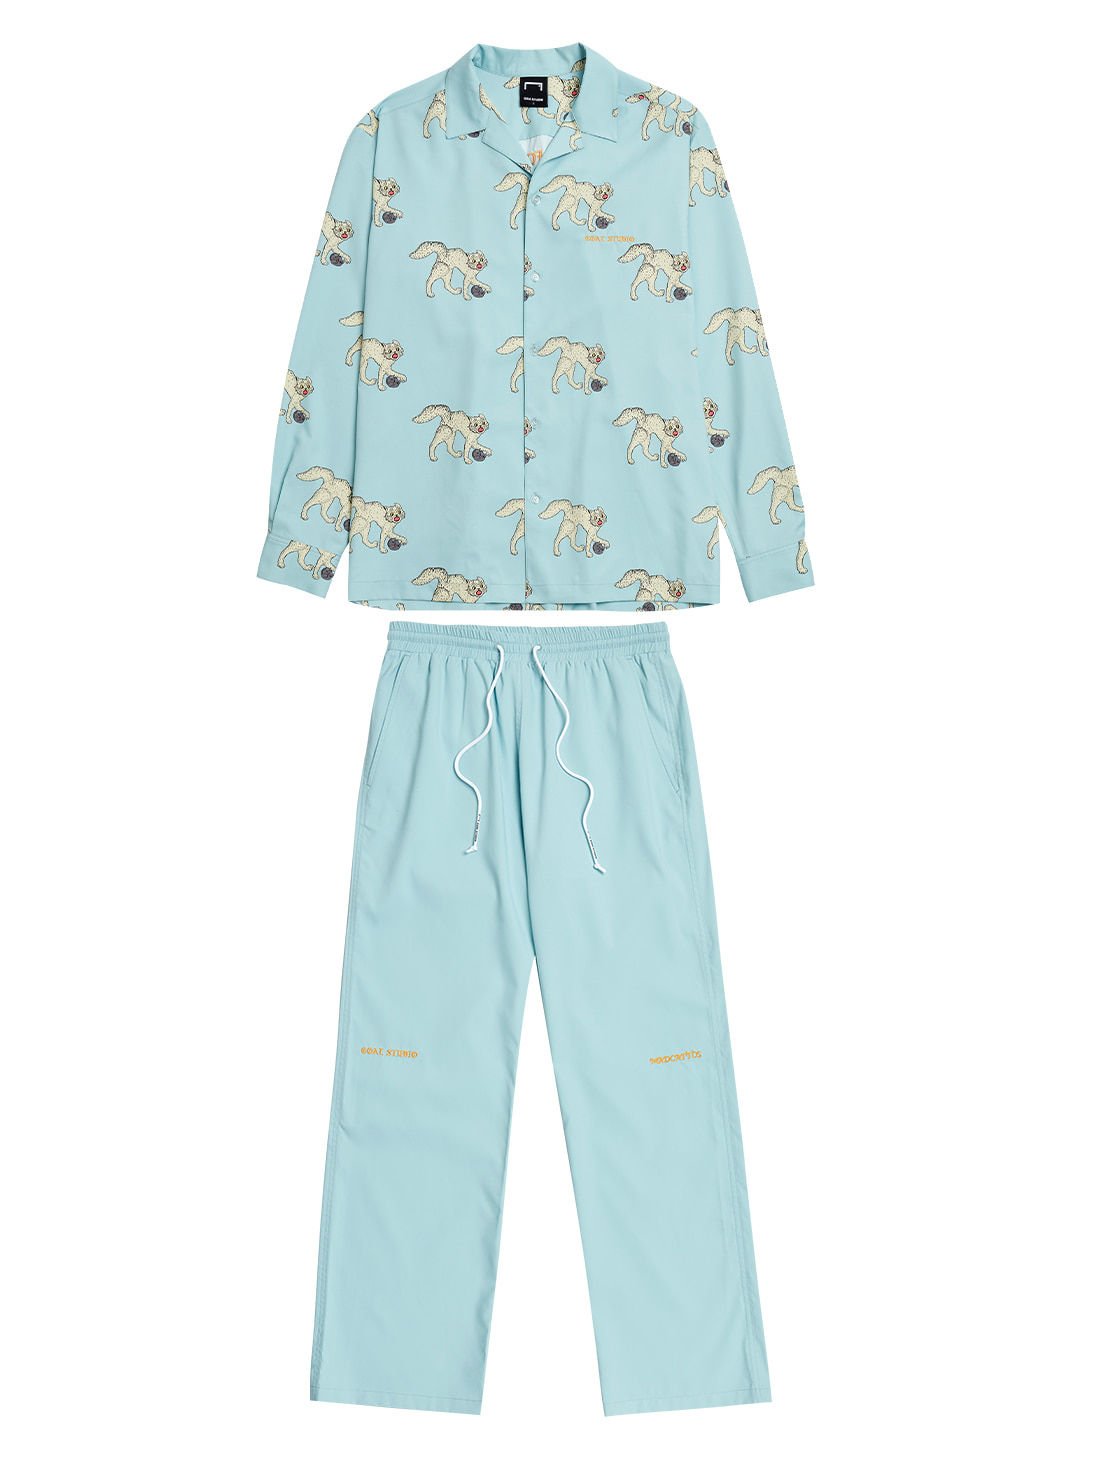 [10% OFF] MC ALL OVER PATTERN SHIRTS & PANTS SET - LIGHT BLUE